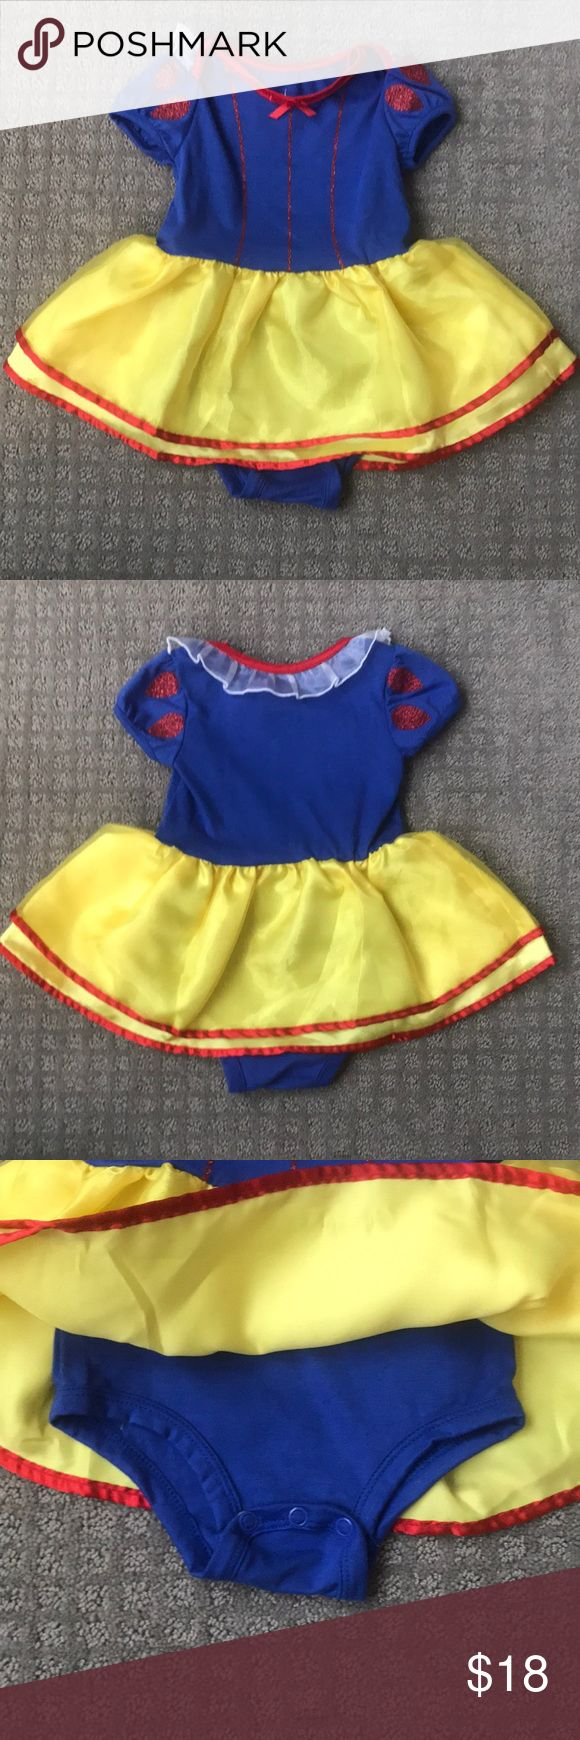 NWOT- 12M Disney Parks Original Snow White Onesie NWOT 12M Snow White Onesie Outfit. This has never been worn or washed. I took the tags off before I put it on and it was too small. Perfect for your little girl. Measurements are included. If you have any questions, let me know!  Offers accepted Disney Costumes